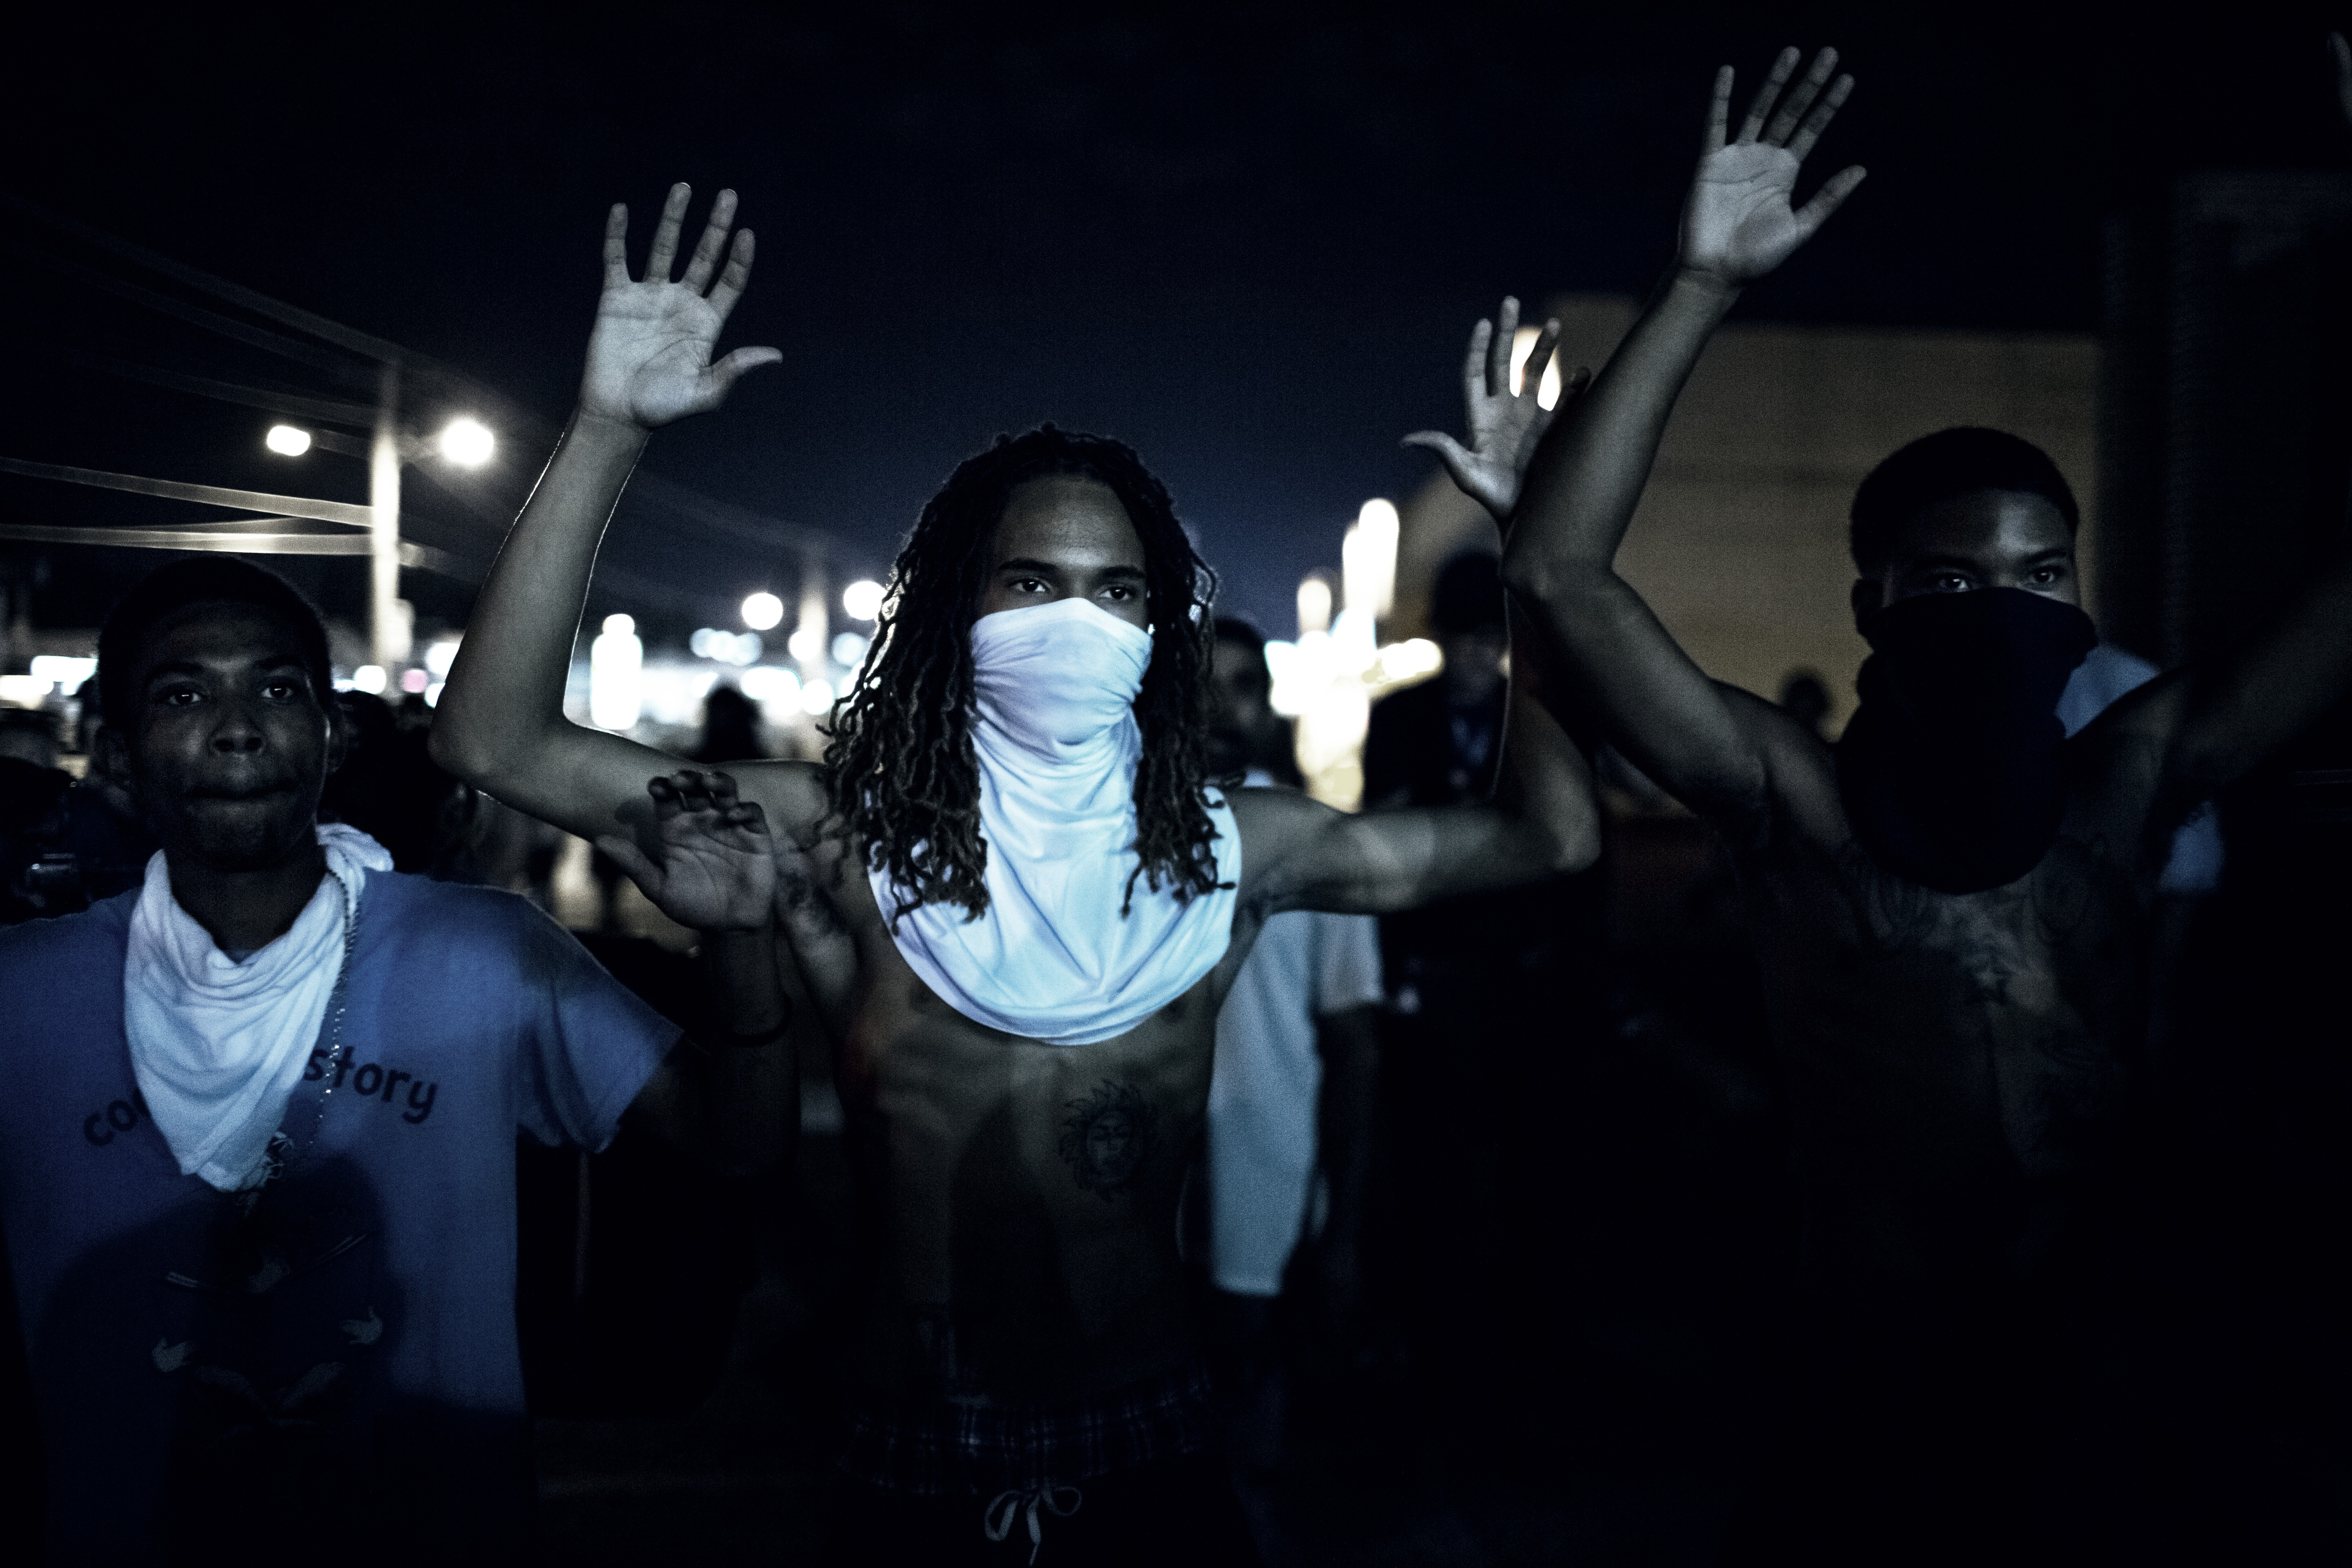 Demonstraters protest the shooting death of unarmed black teenager Michael Brown by police, during clashes with police that erupted following a mostly peacful protest early on Aug 20, 2014 in Furguson, Mo.